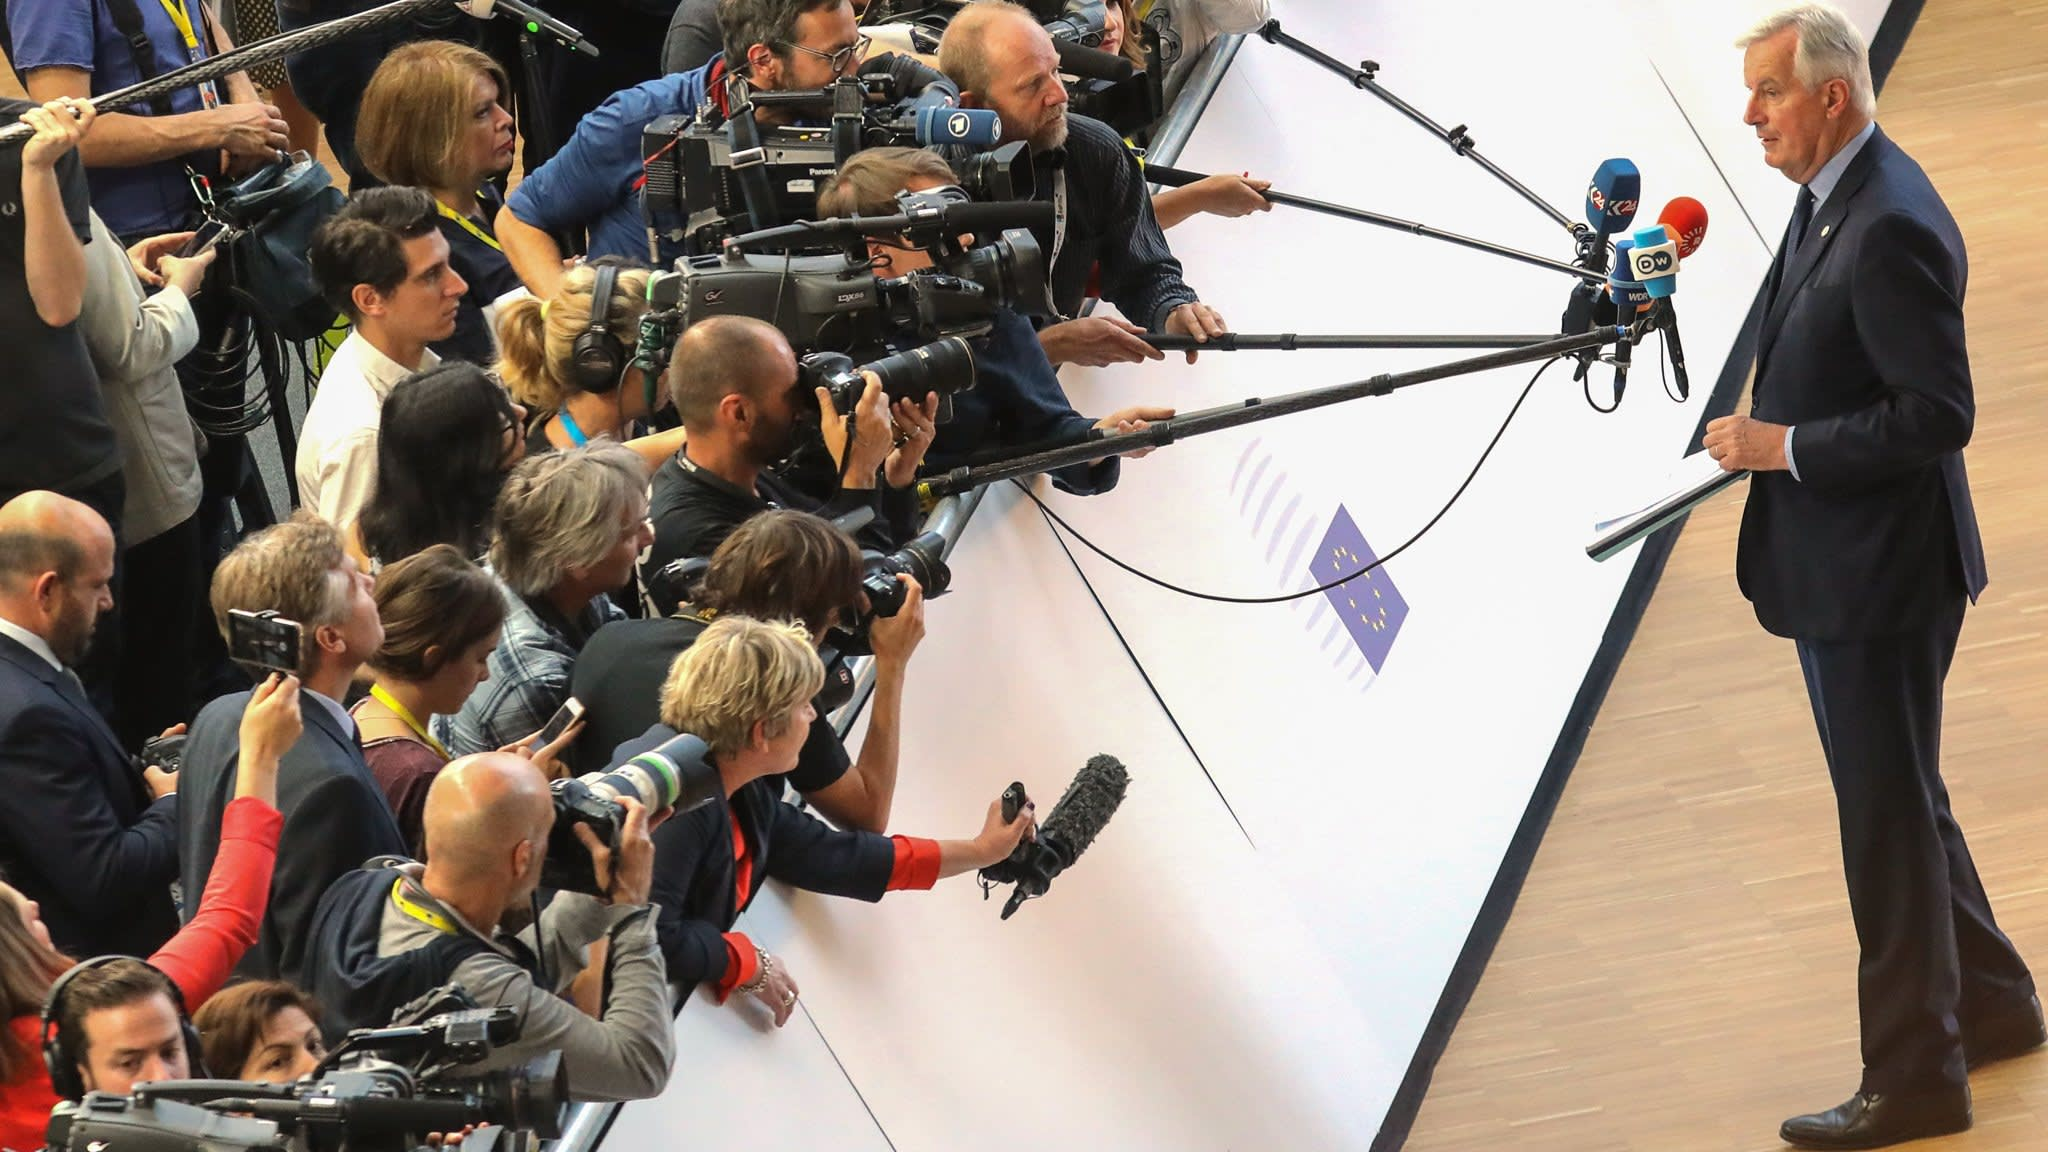 Belgium to charge journalists €100 a year for EU summit coverage